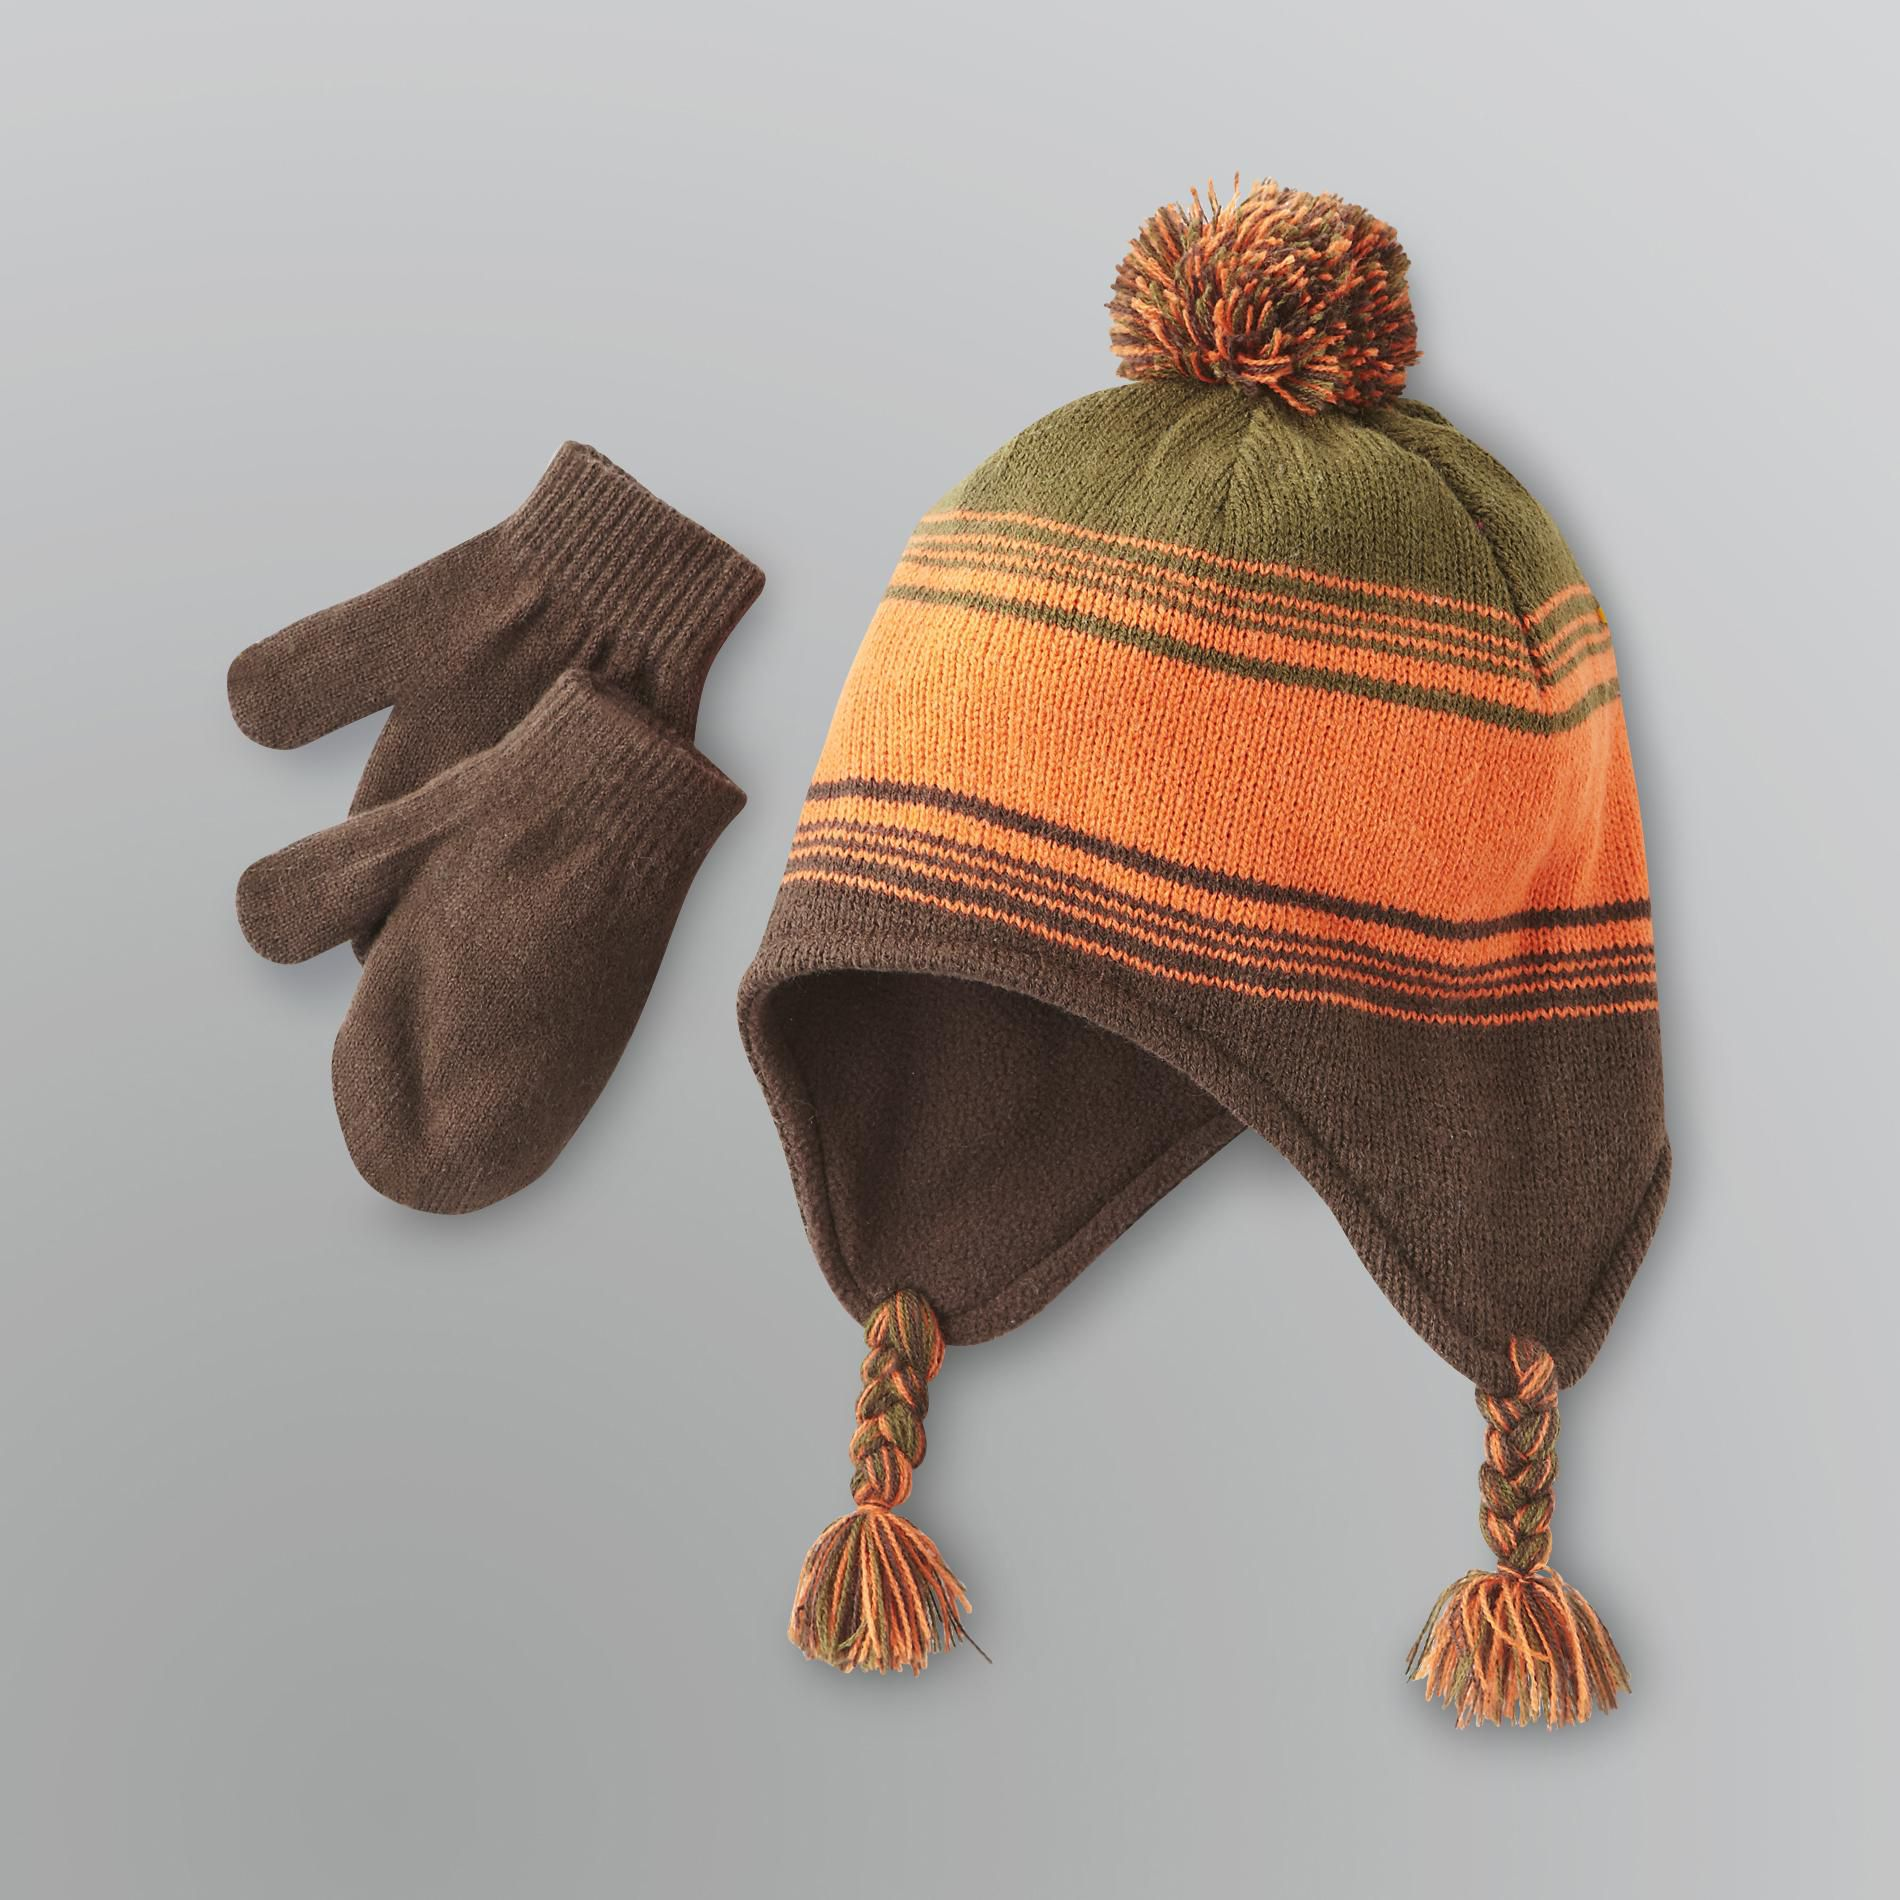 Toddler Boy's Winter Hat & Mittens Set                                                                                           at mygofer.com